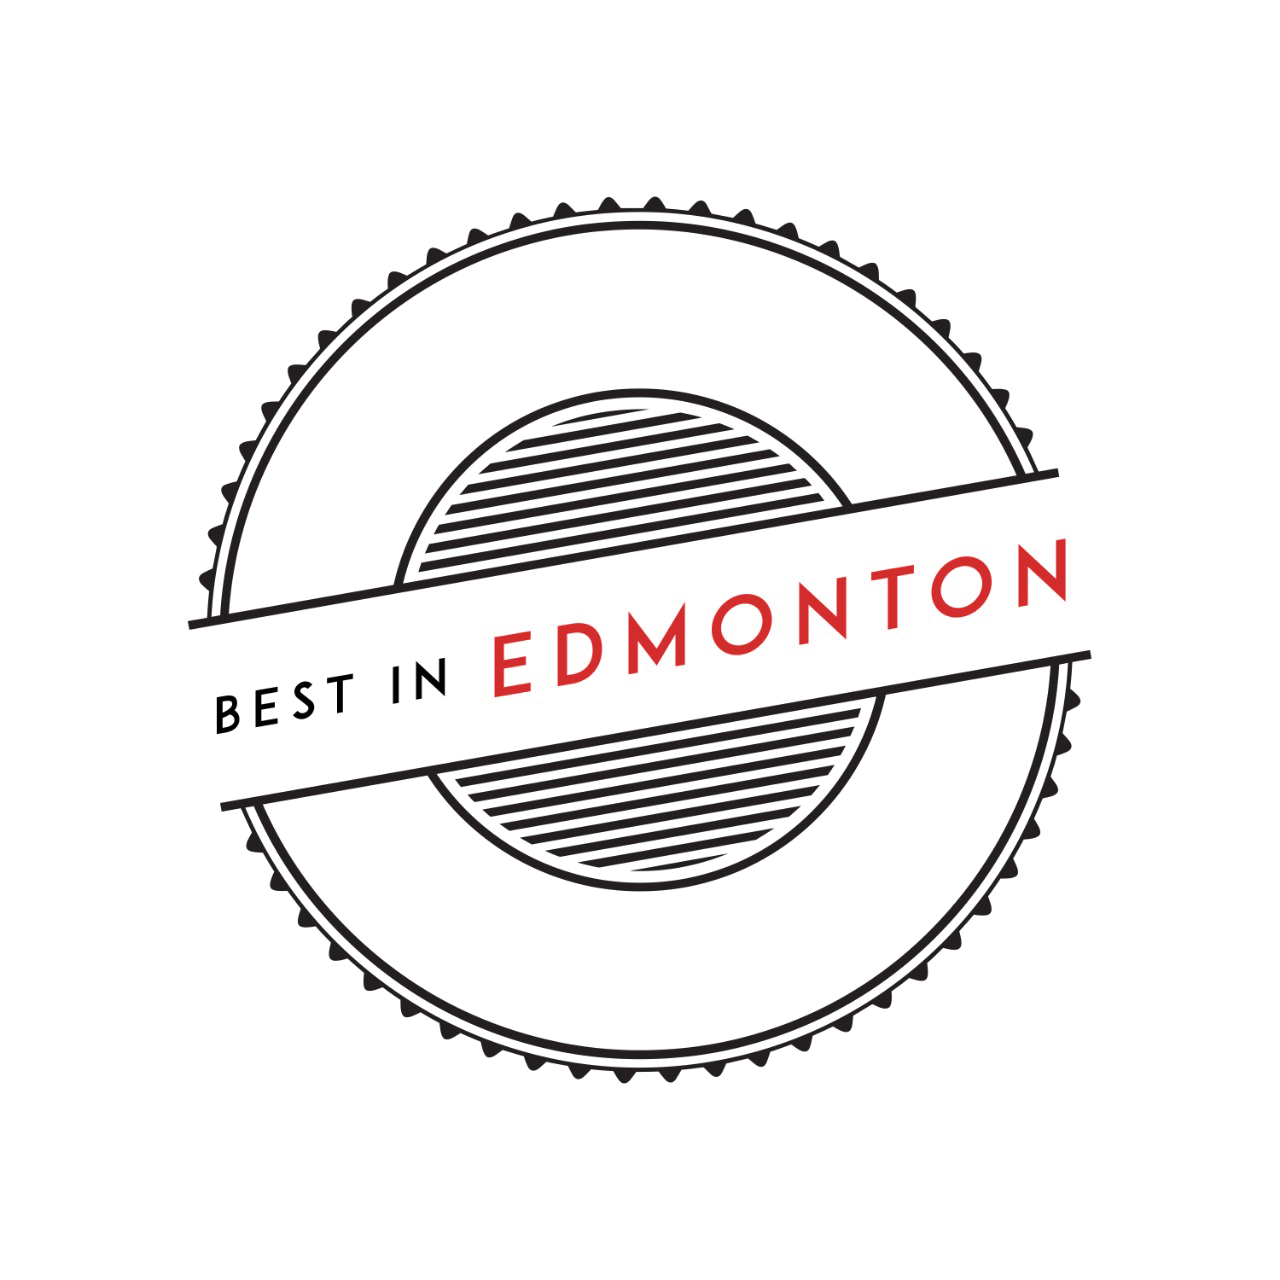 bestinedmonton-badge.png